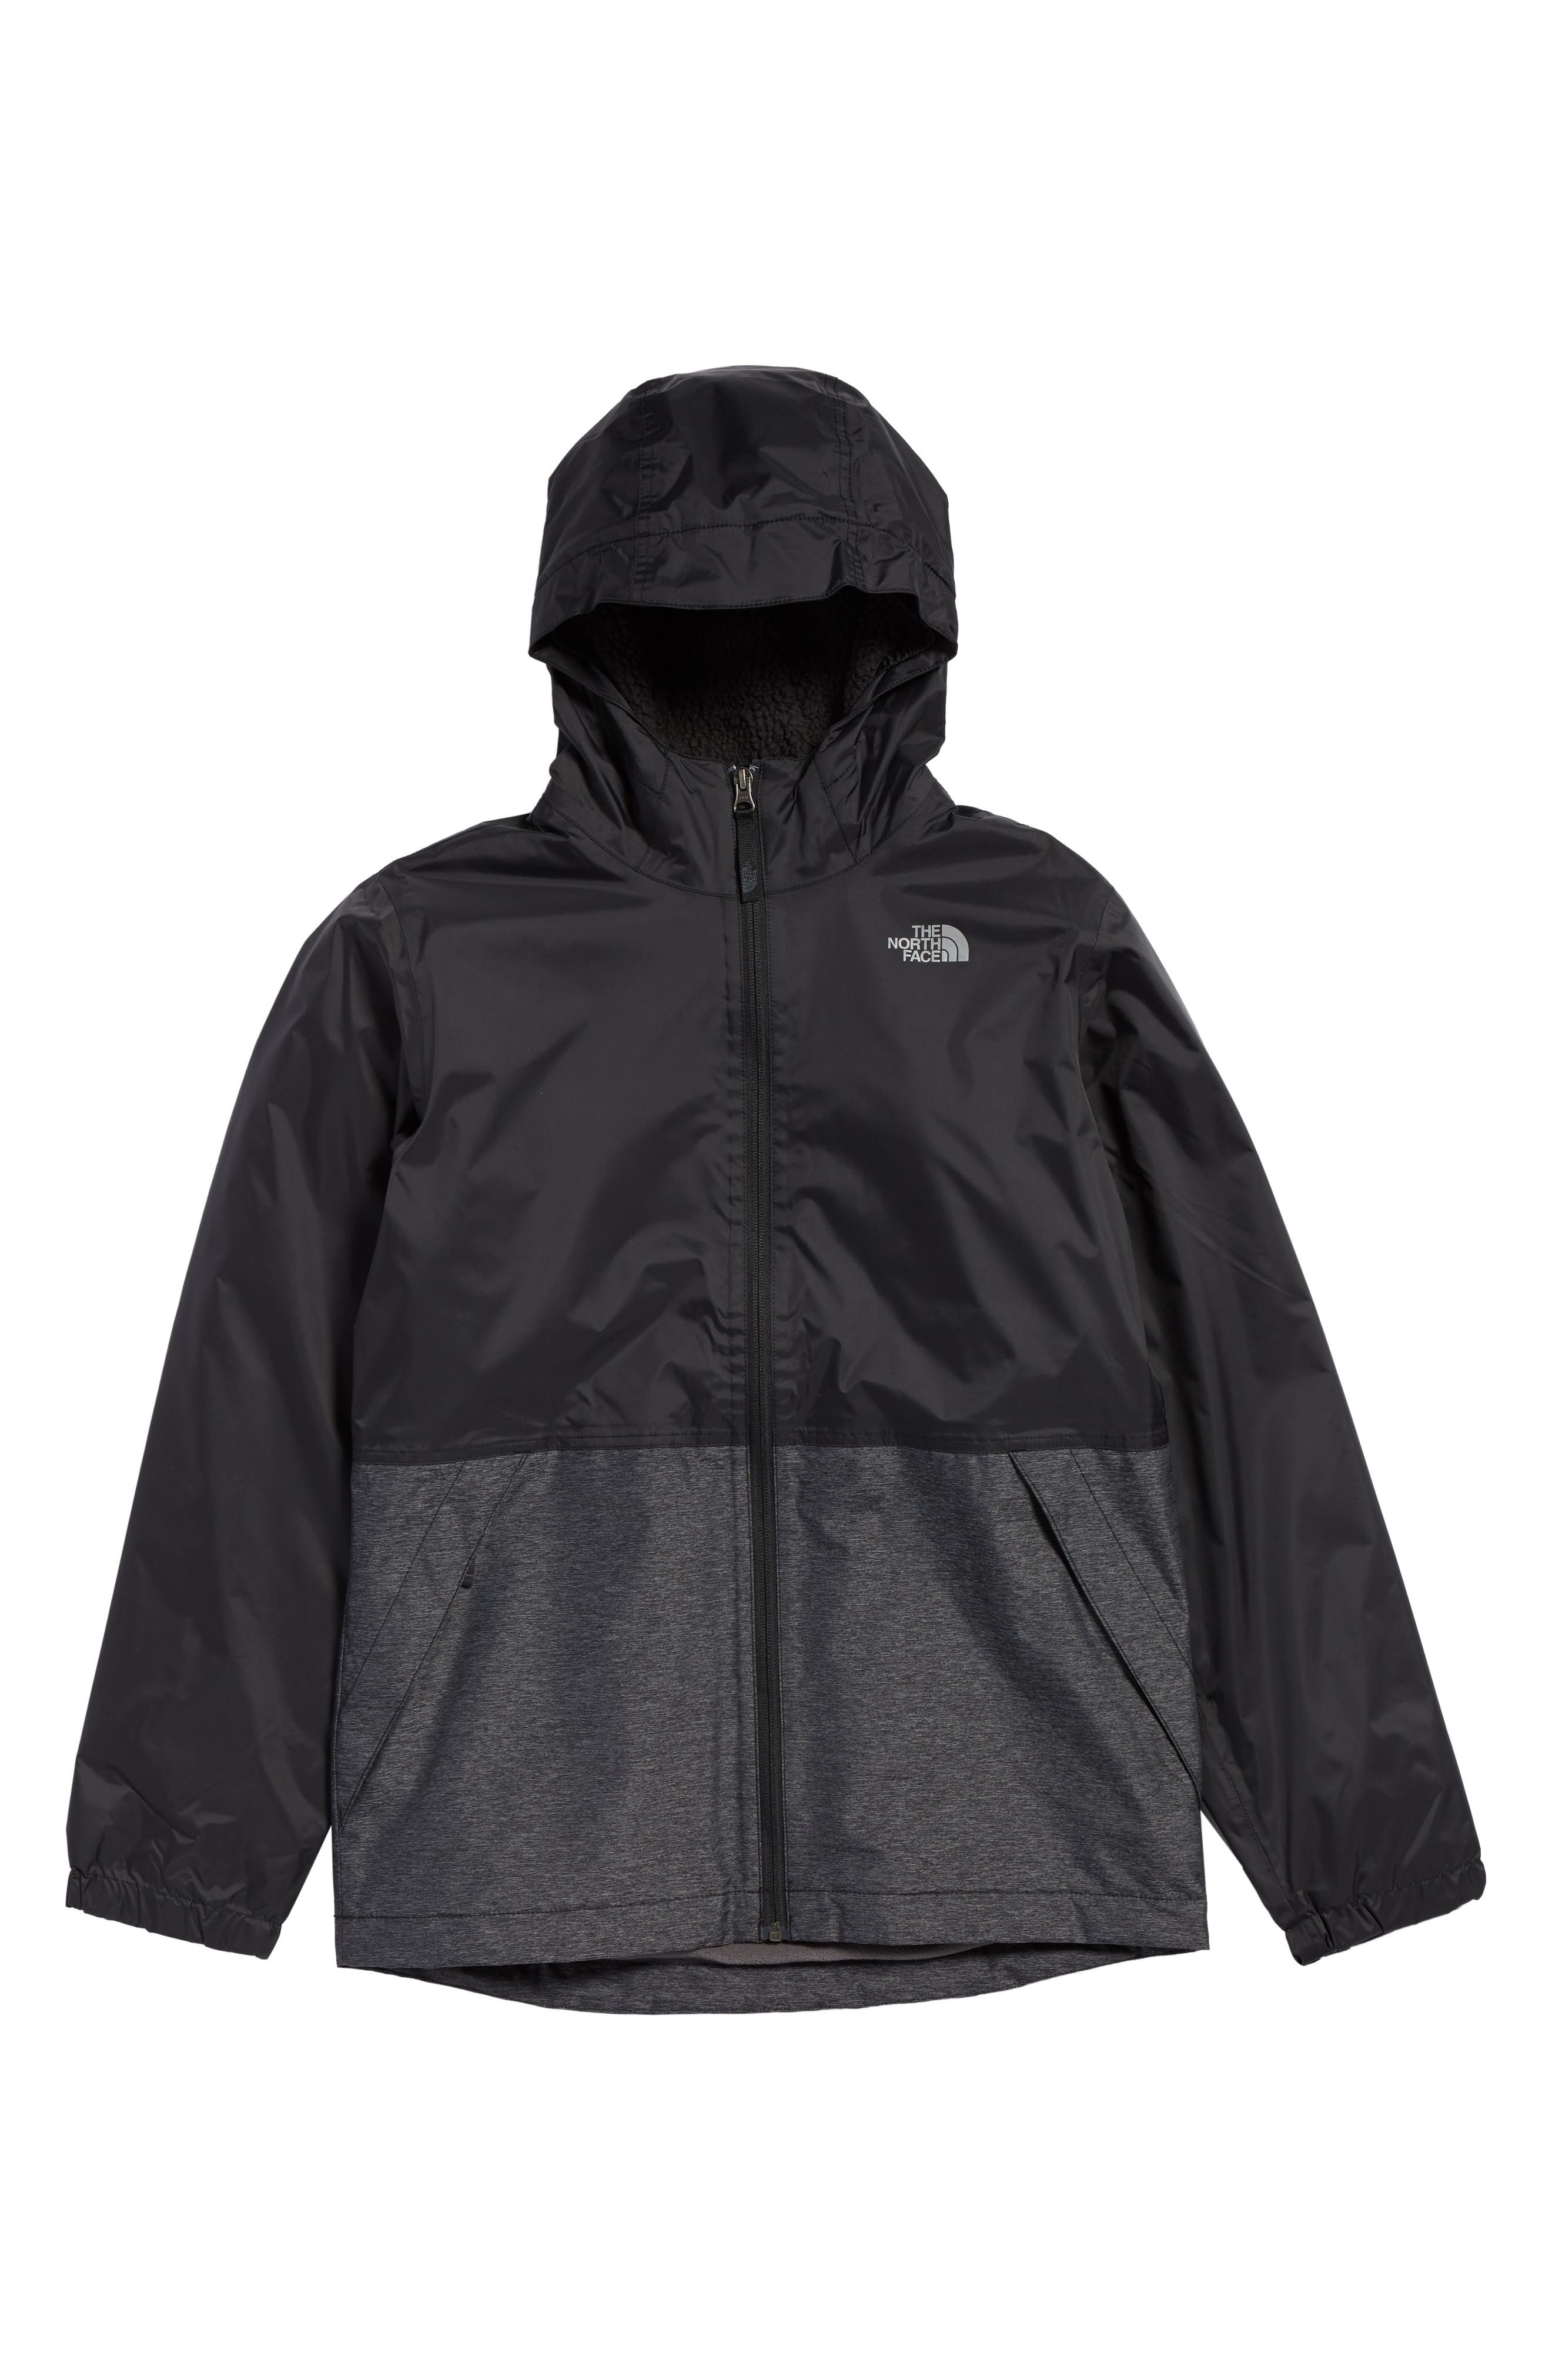 Warm Storm Hooded Waterproof Jacket,                         Main,                         color, Tnf Black